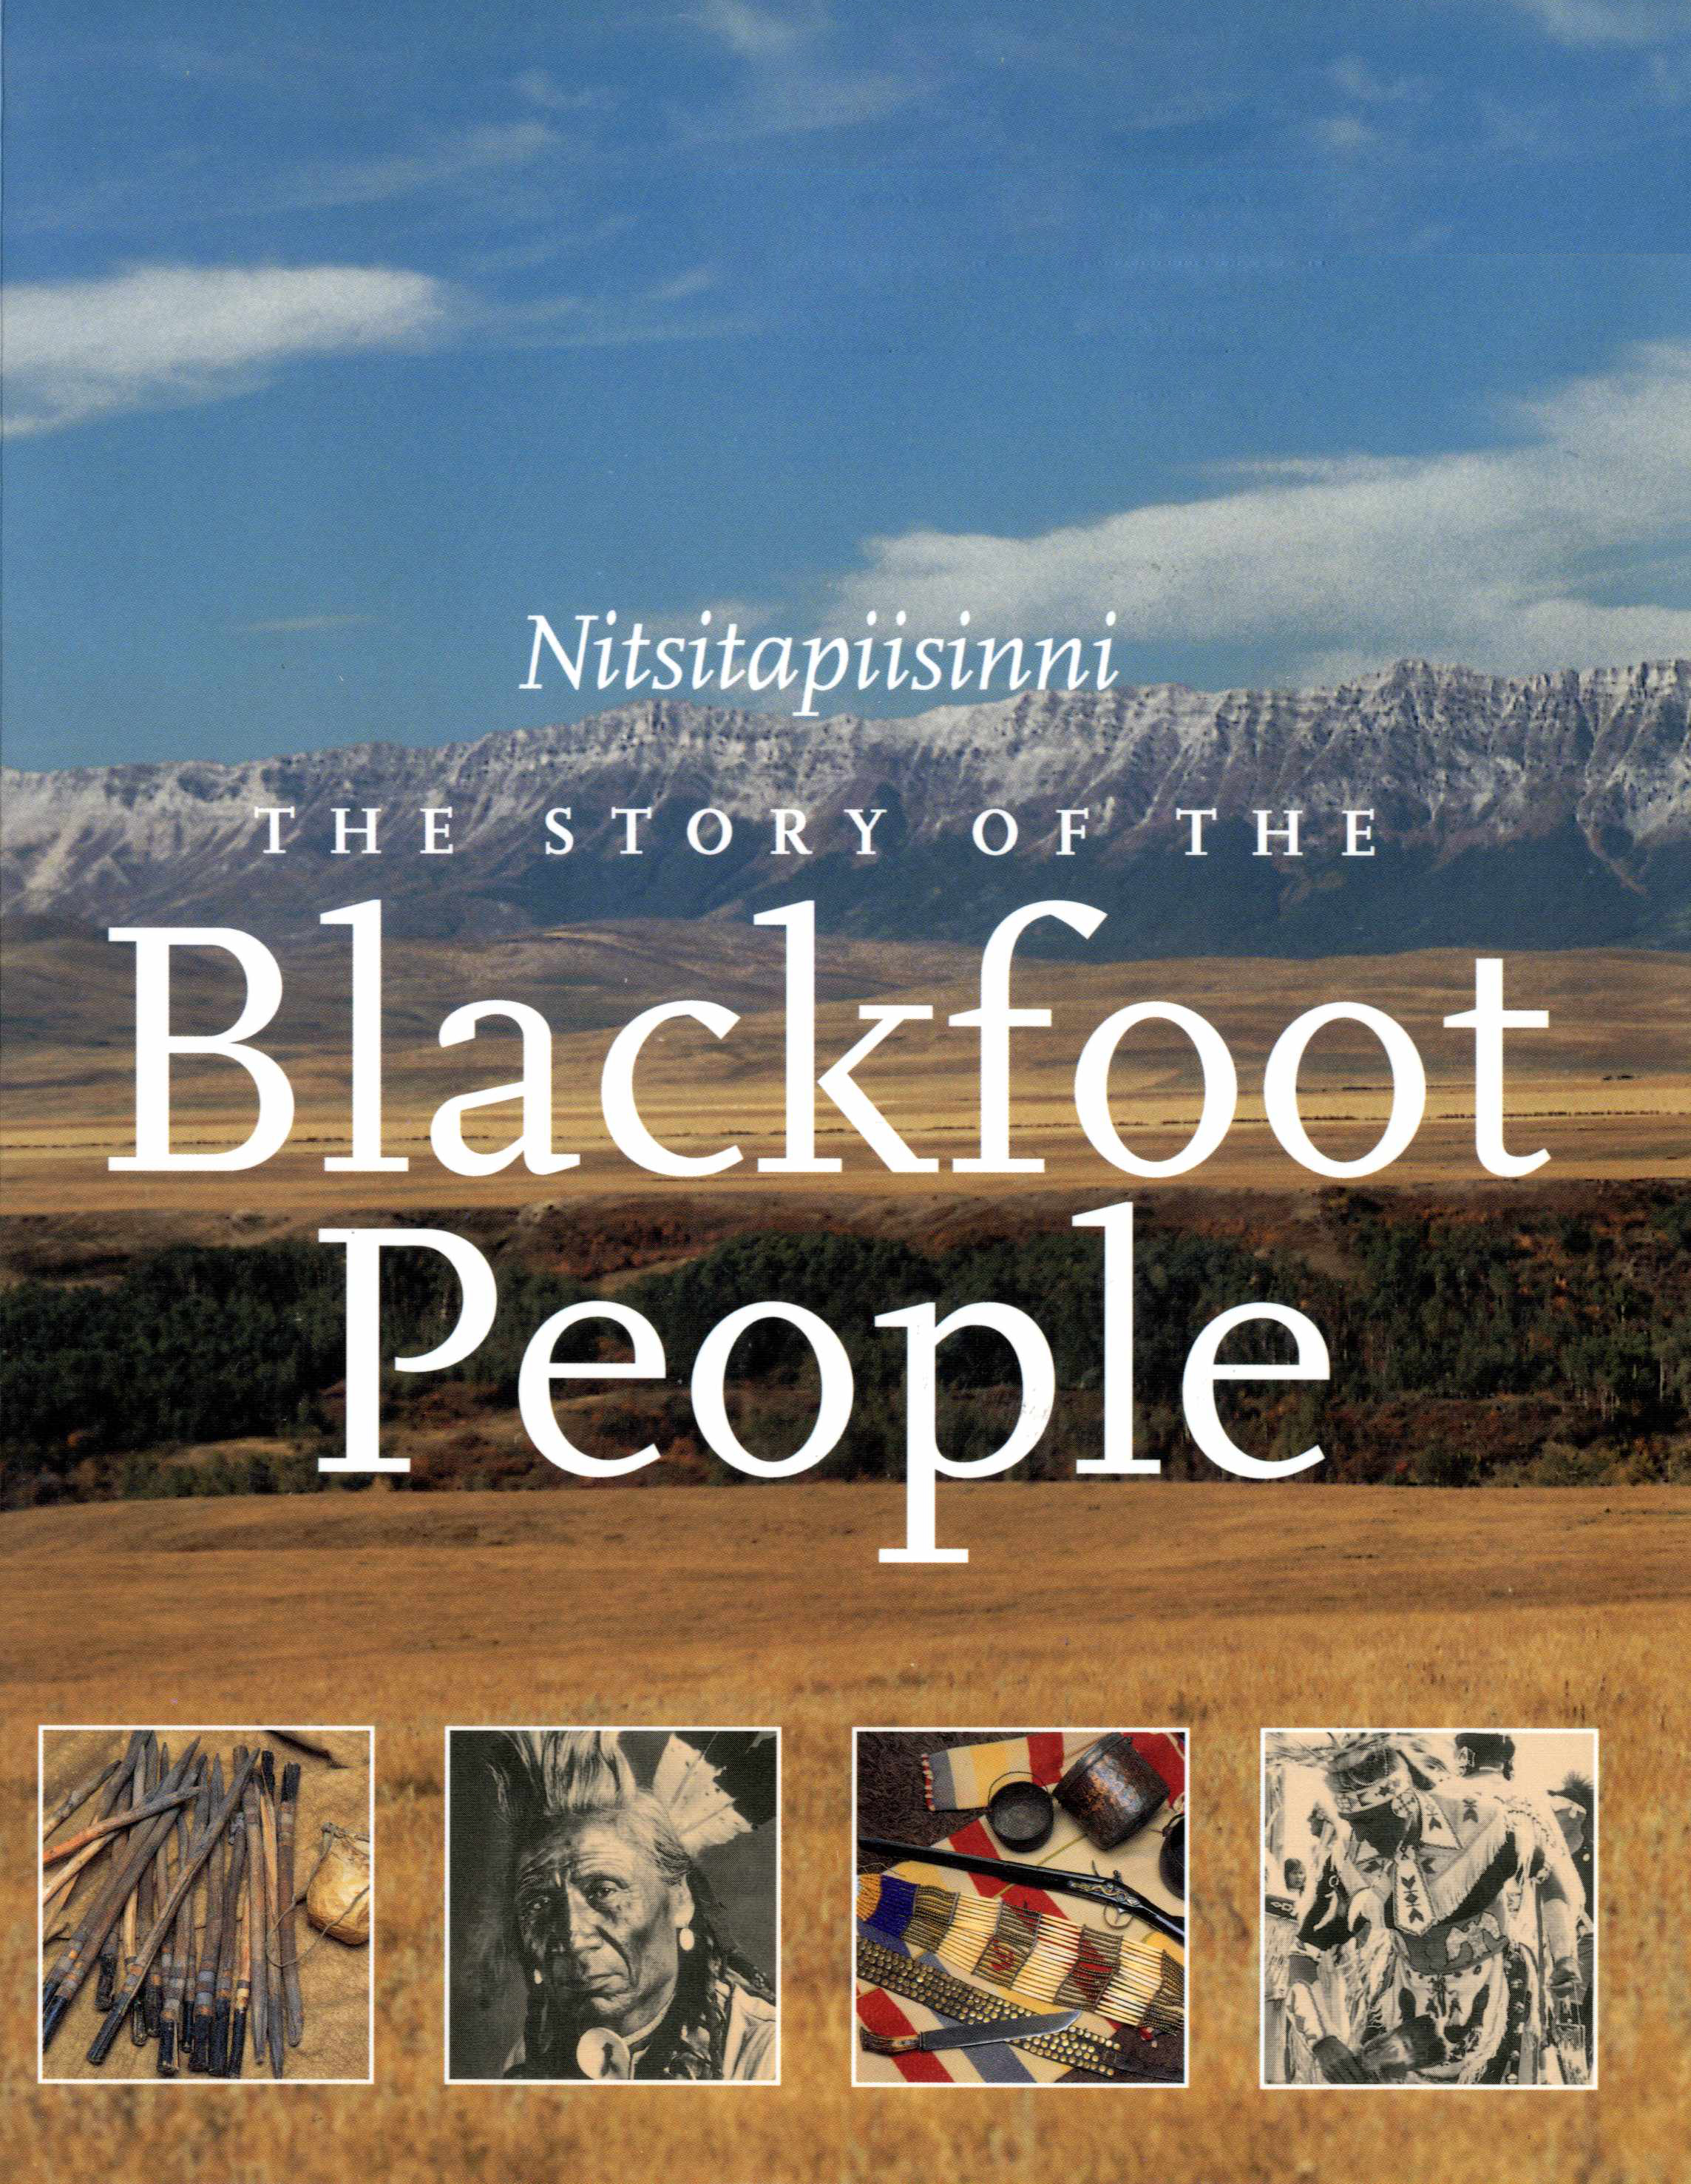 Nitsitapiisinni The Story of the Blackfoot People Image